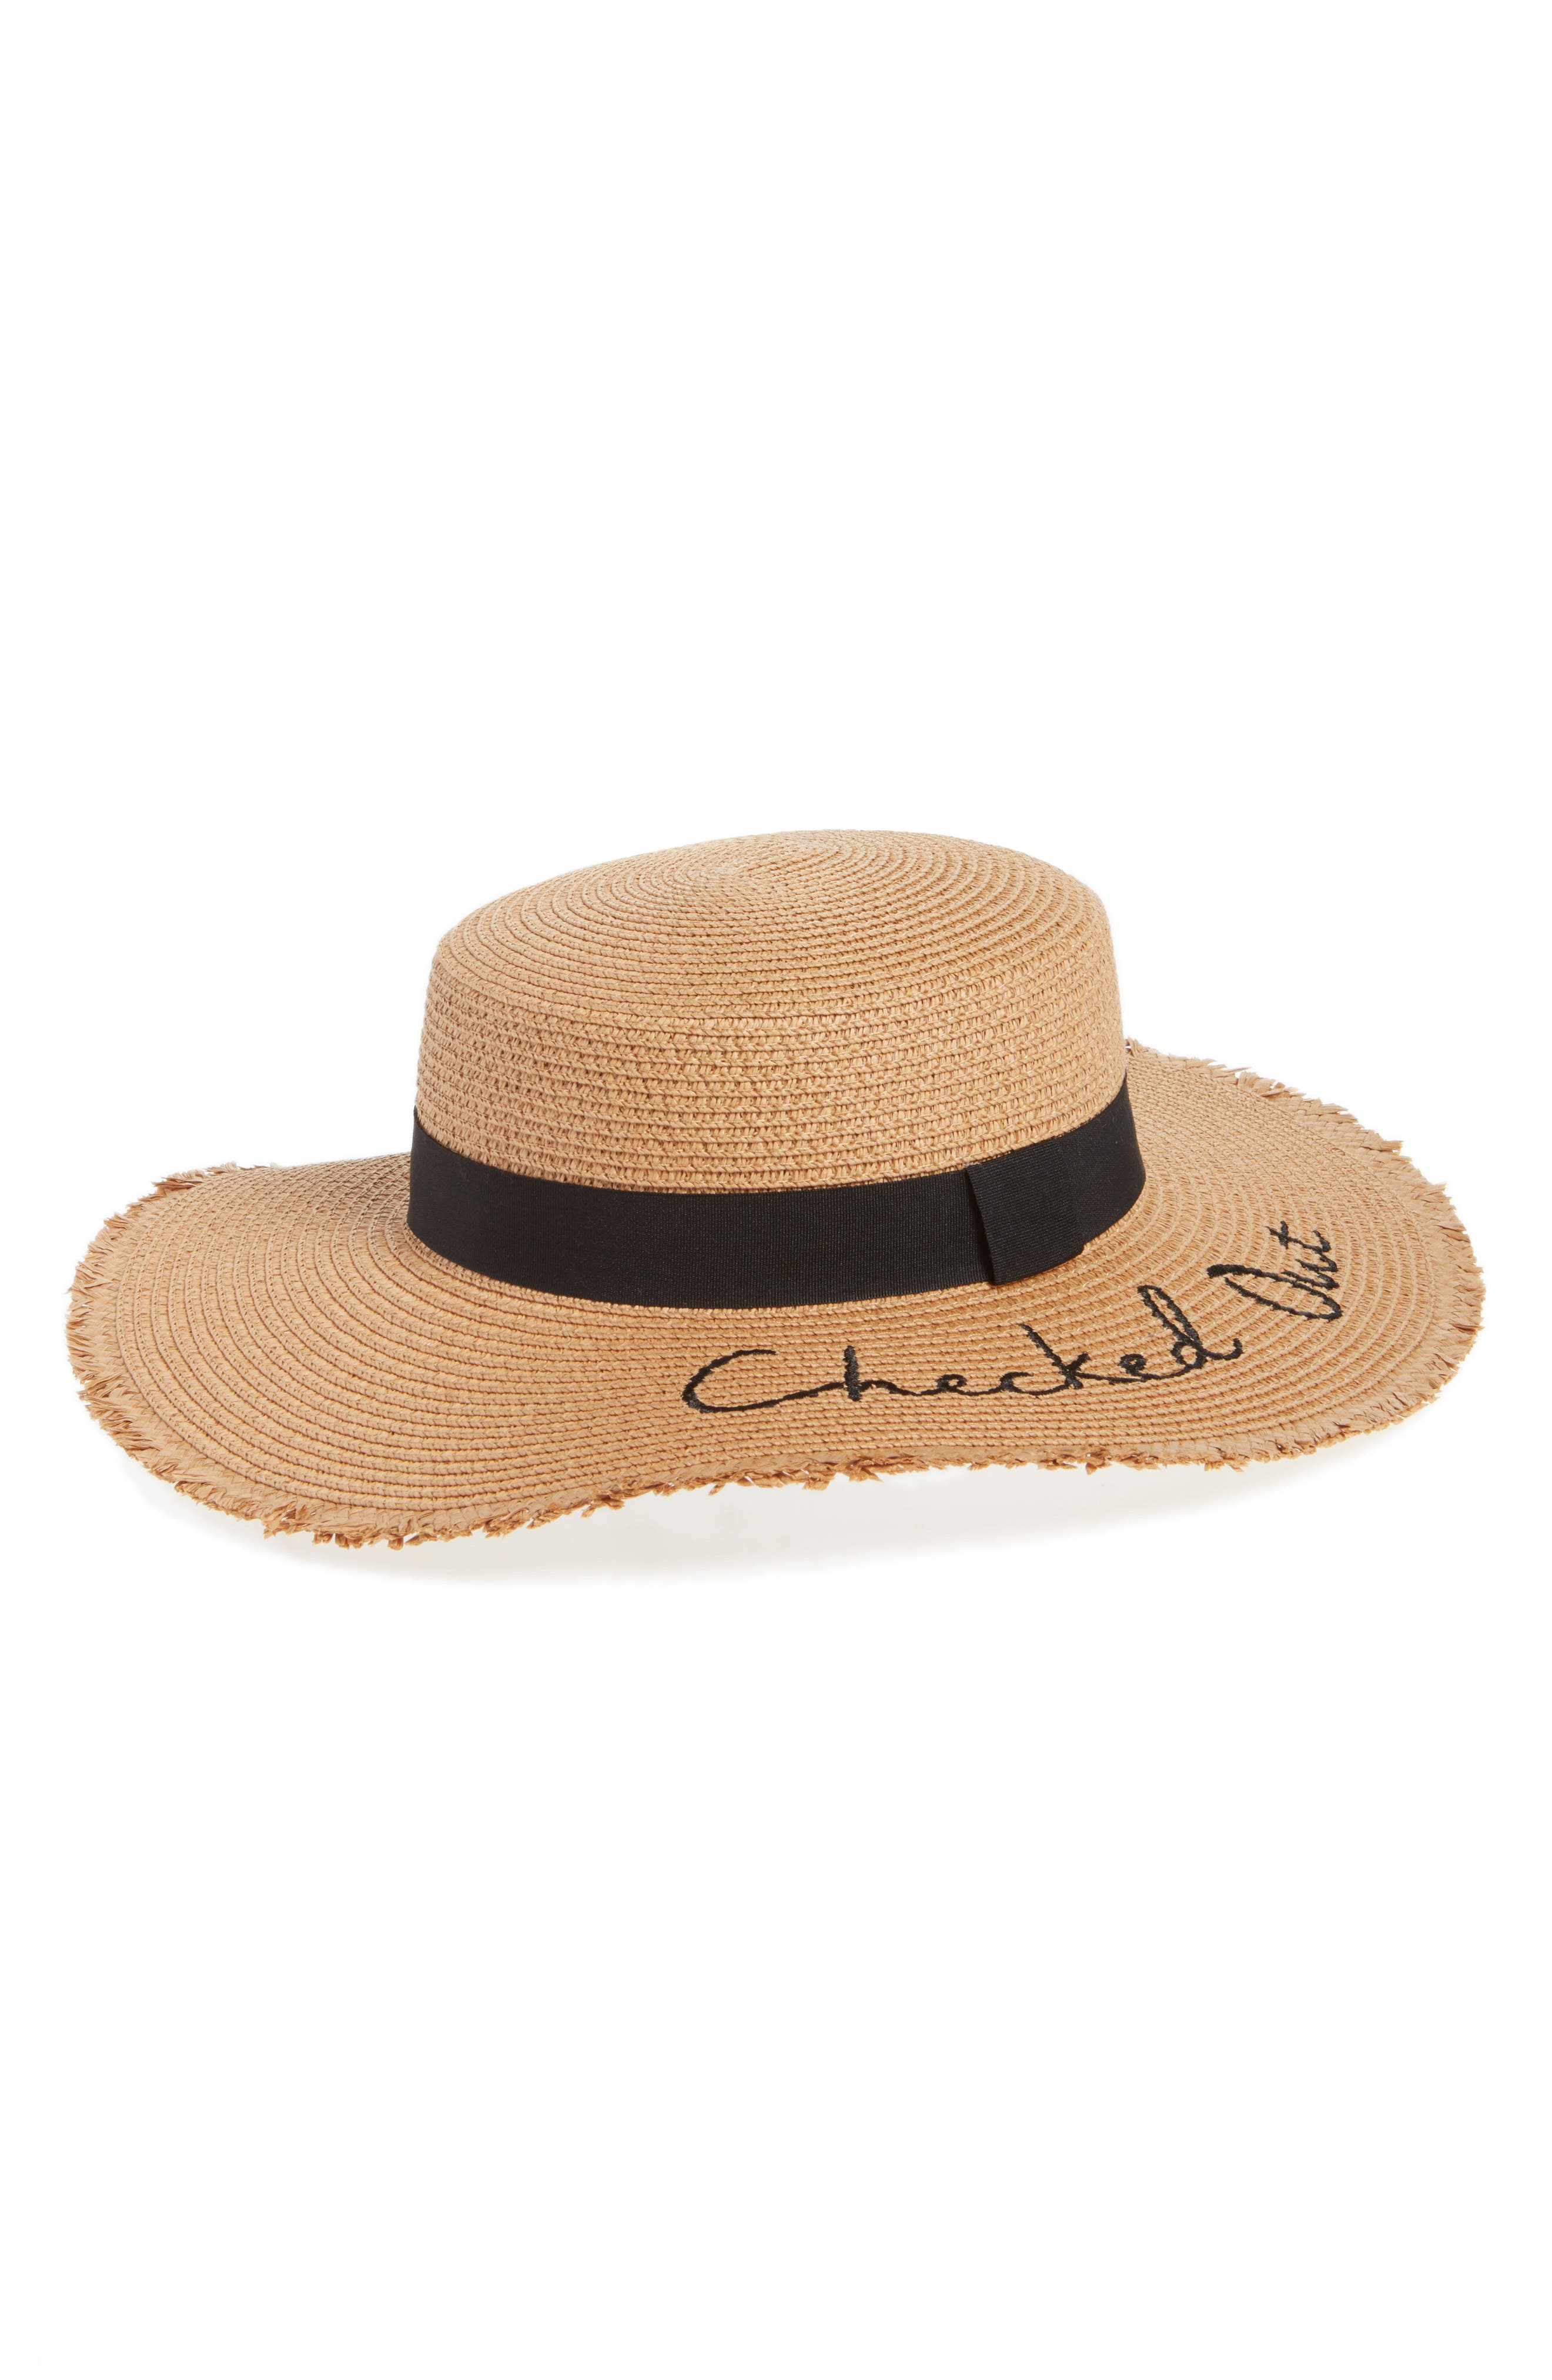 Verbiage Frayed Edge Straw Boater Hat,                             Main thumbnail 1, color,                             Natural/ Black